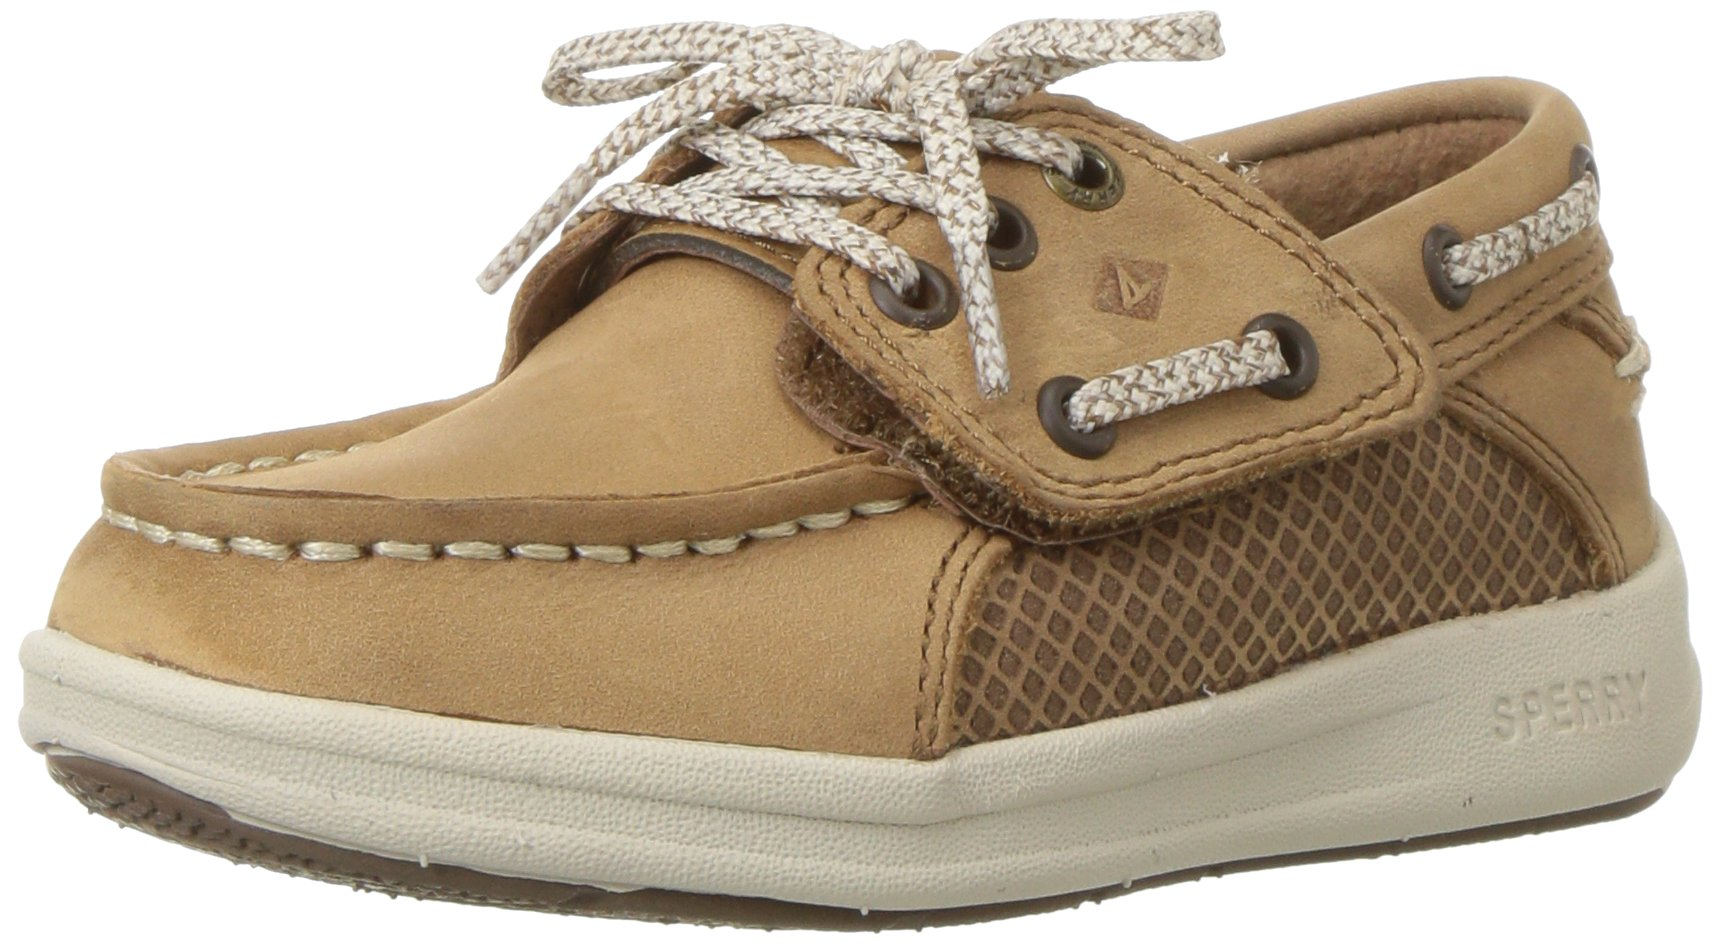 Sperry Gamefish A/C Boat Shoe (Toddler/Little Kid), Dark Tan, 7 Wide US Toddler by Sperry